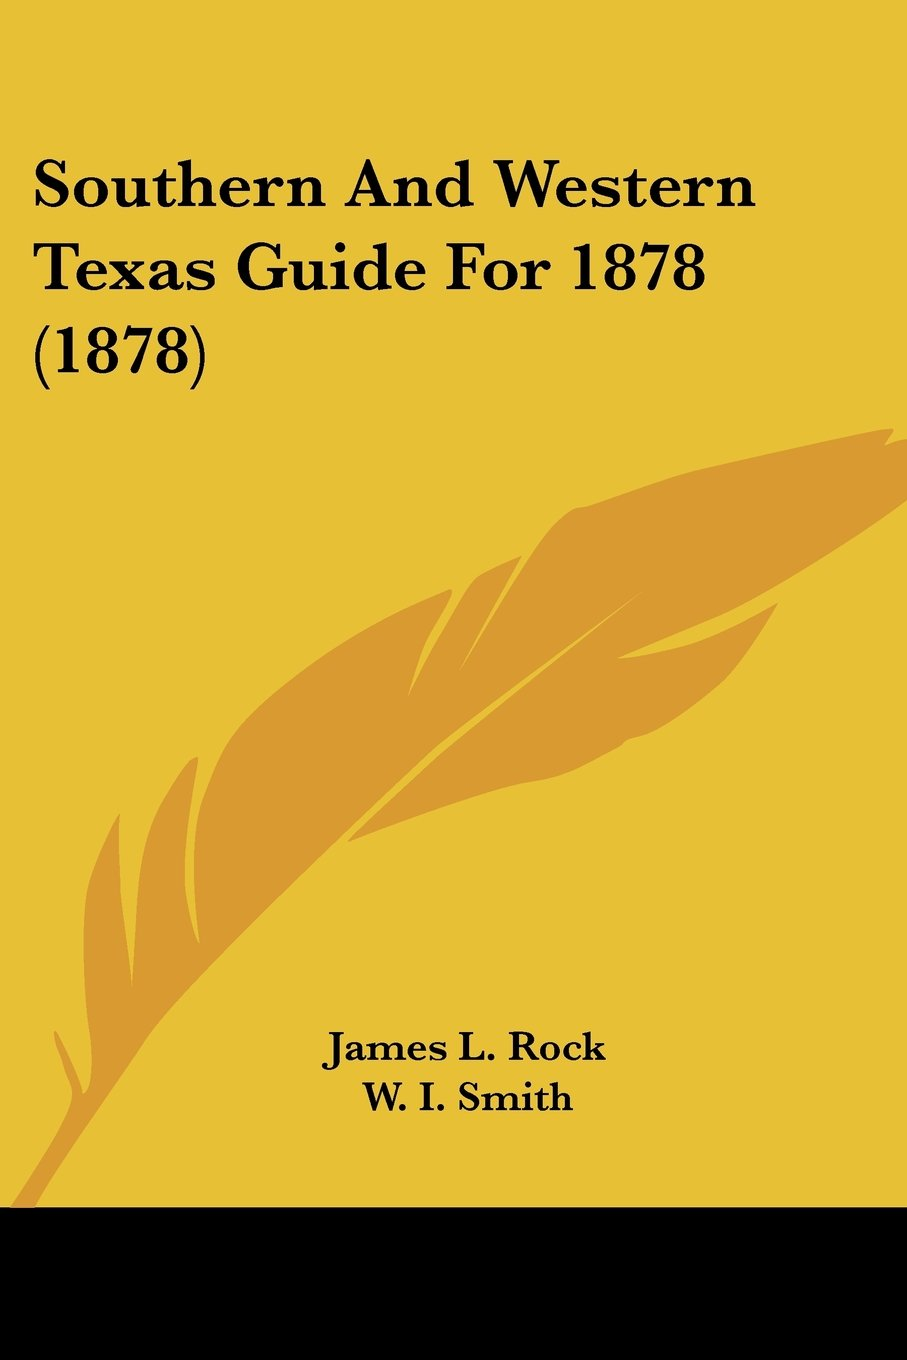 Southern And Western Texas Guide For 1878 (1878) PDF